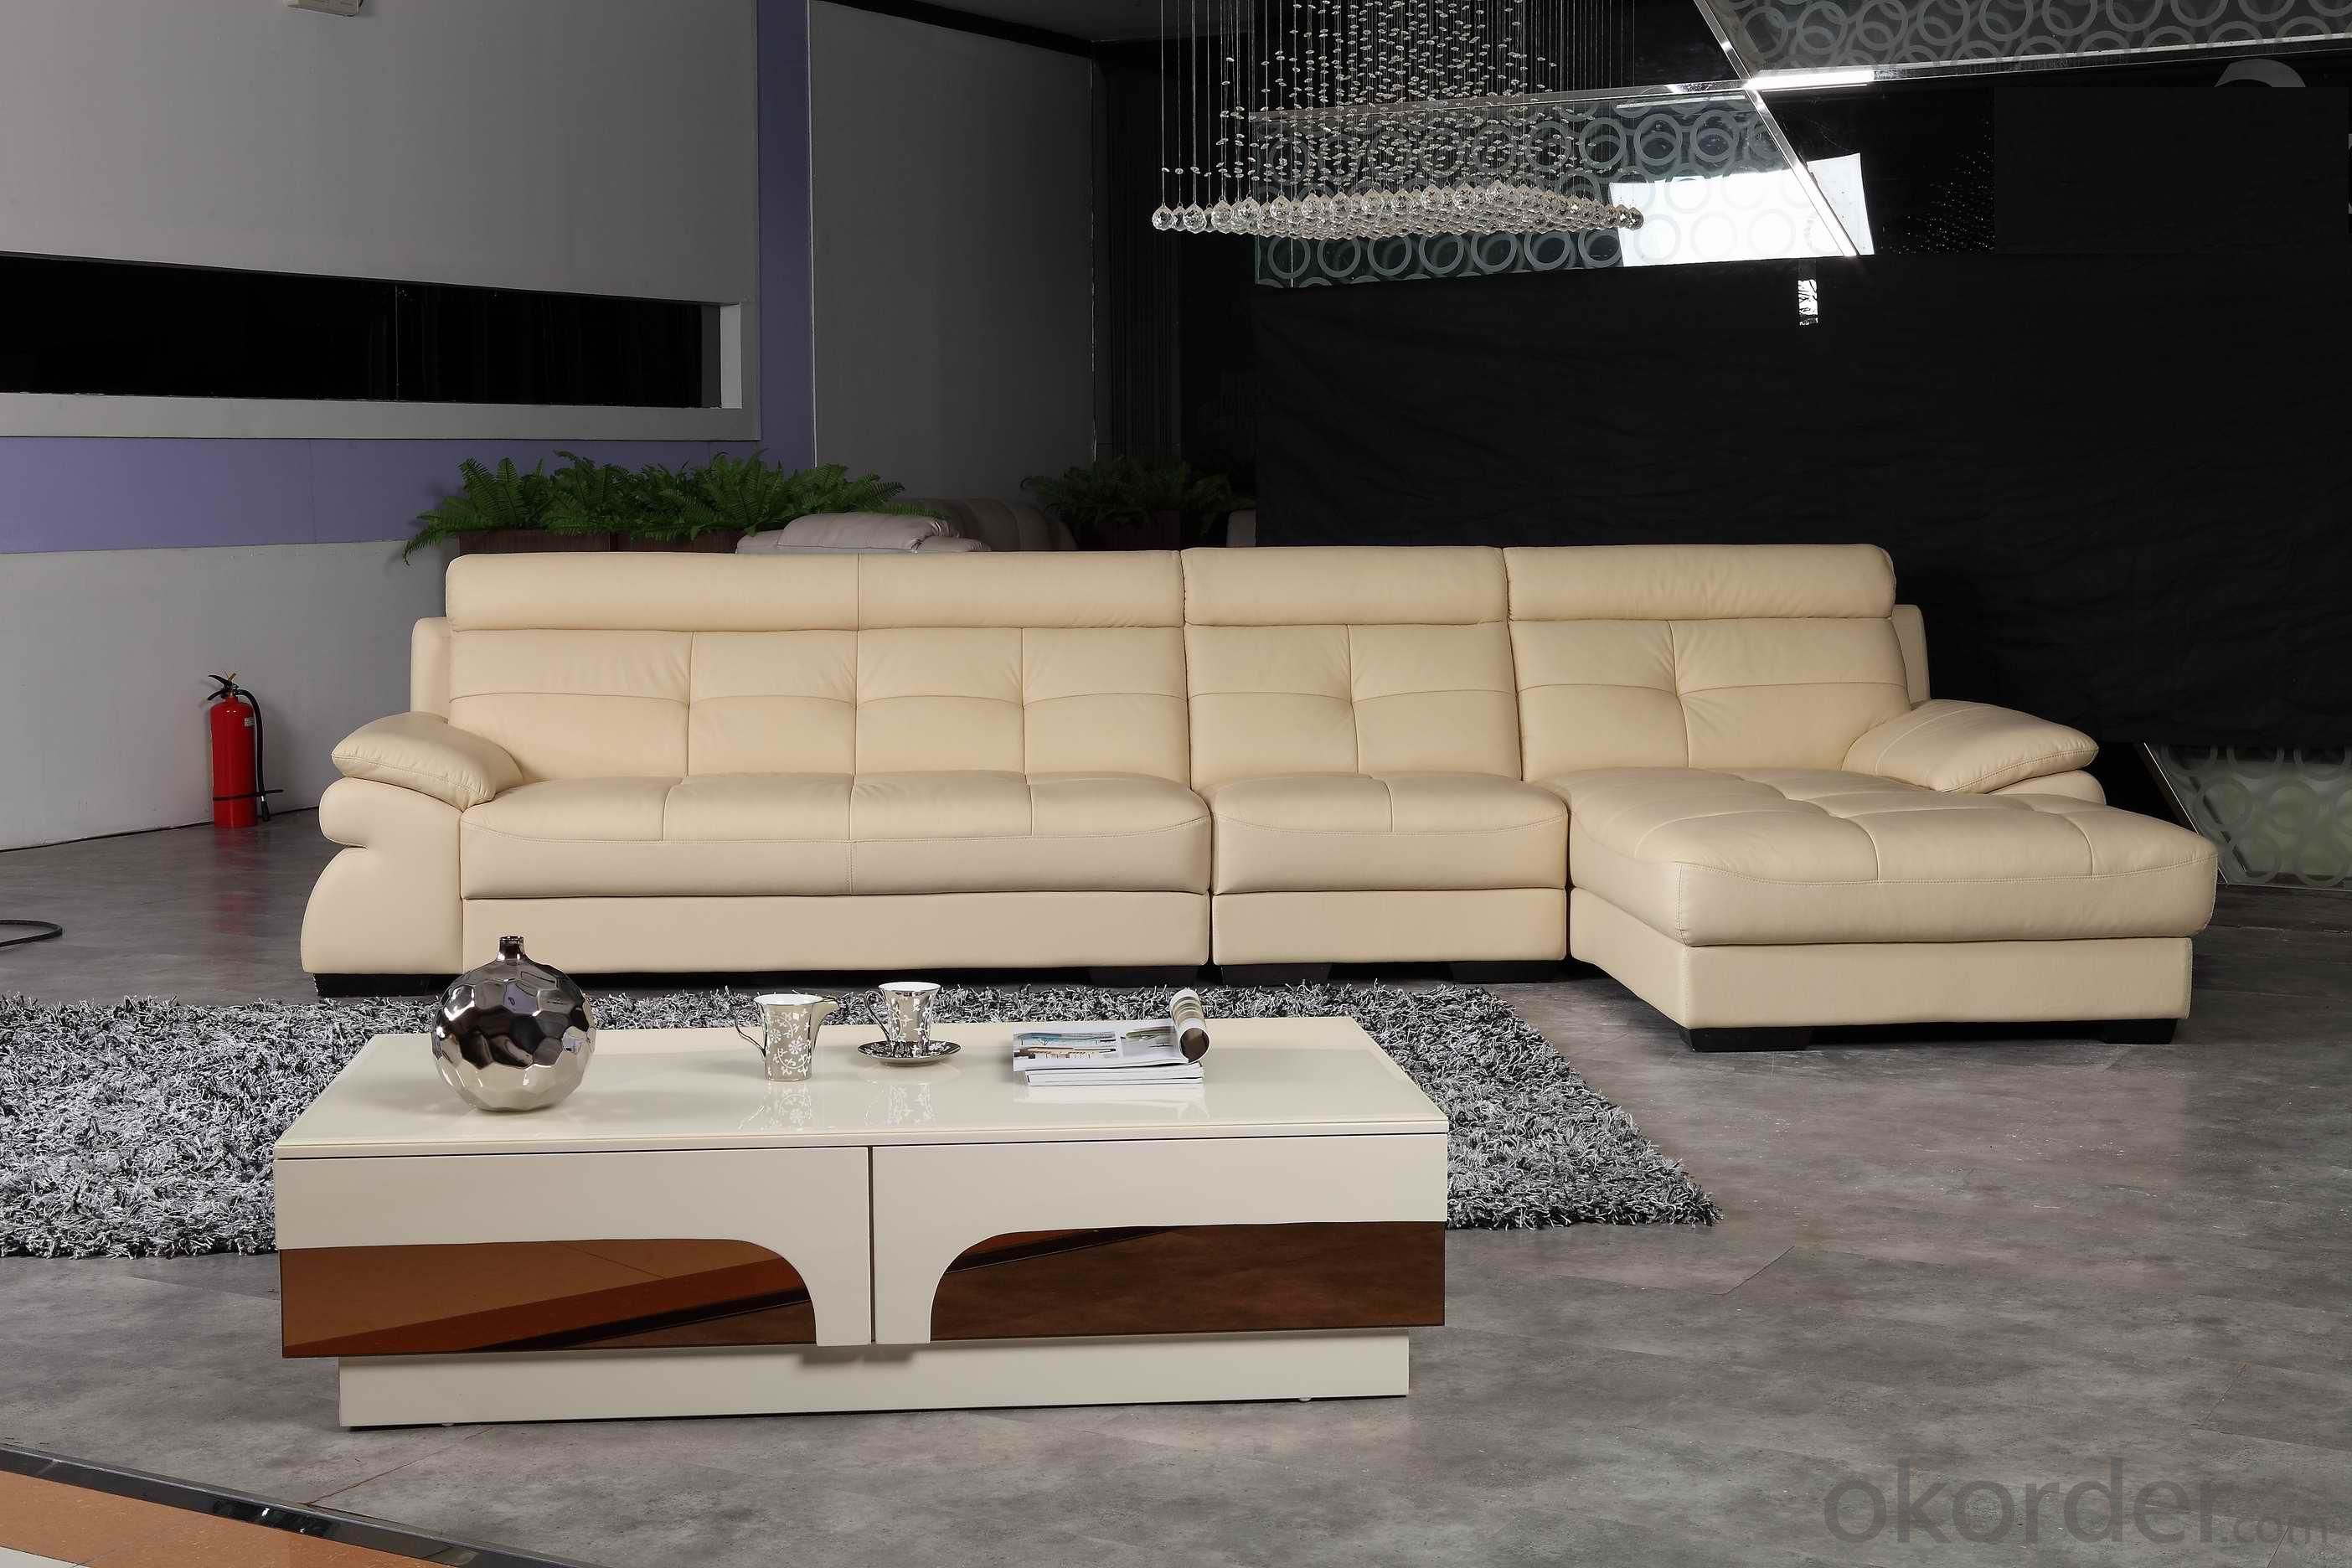 Leather sofa model-22